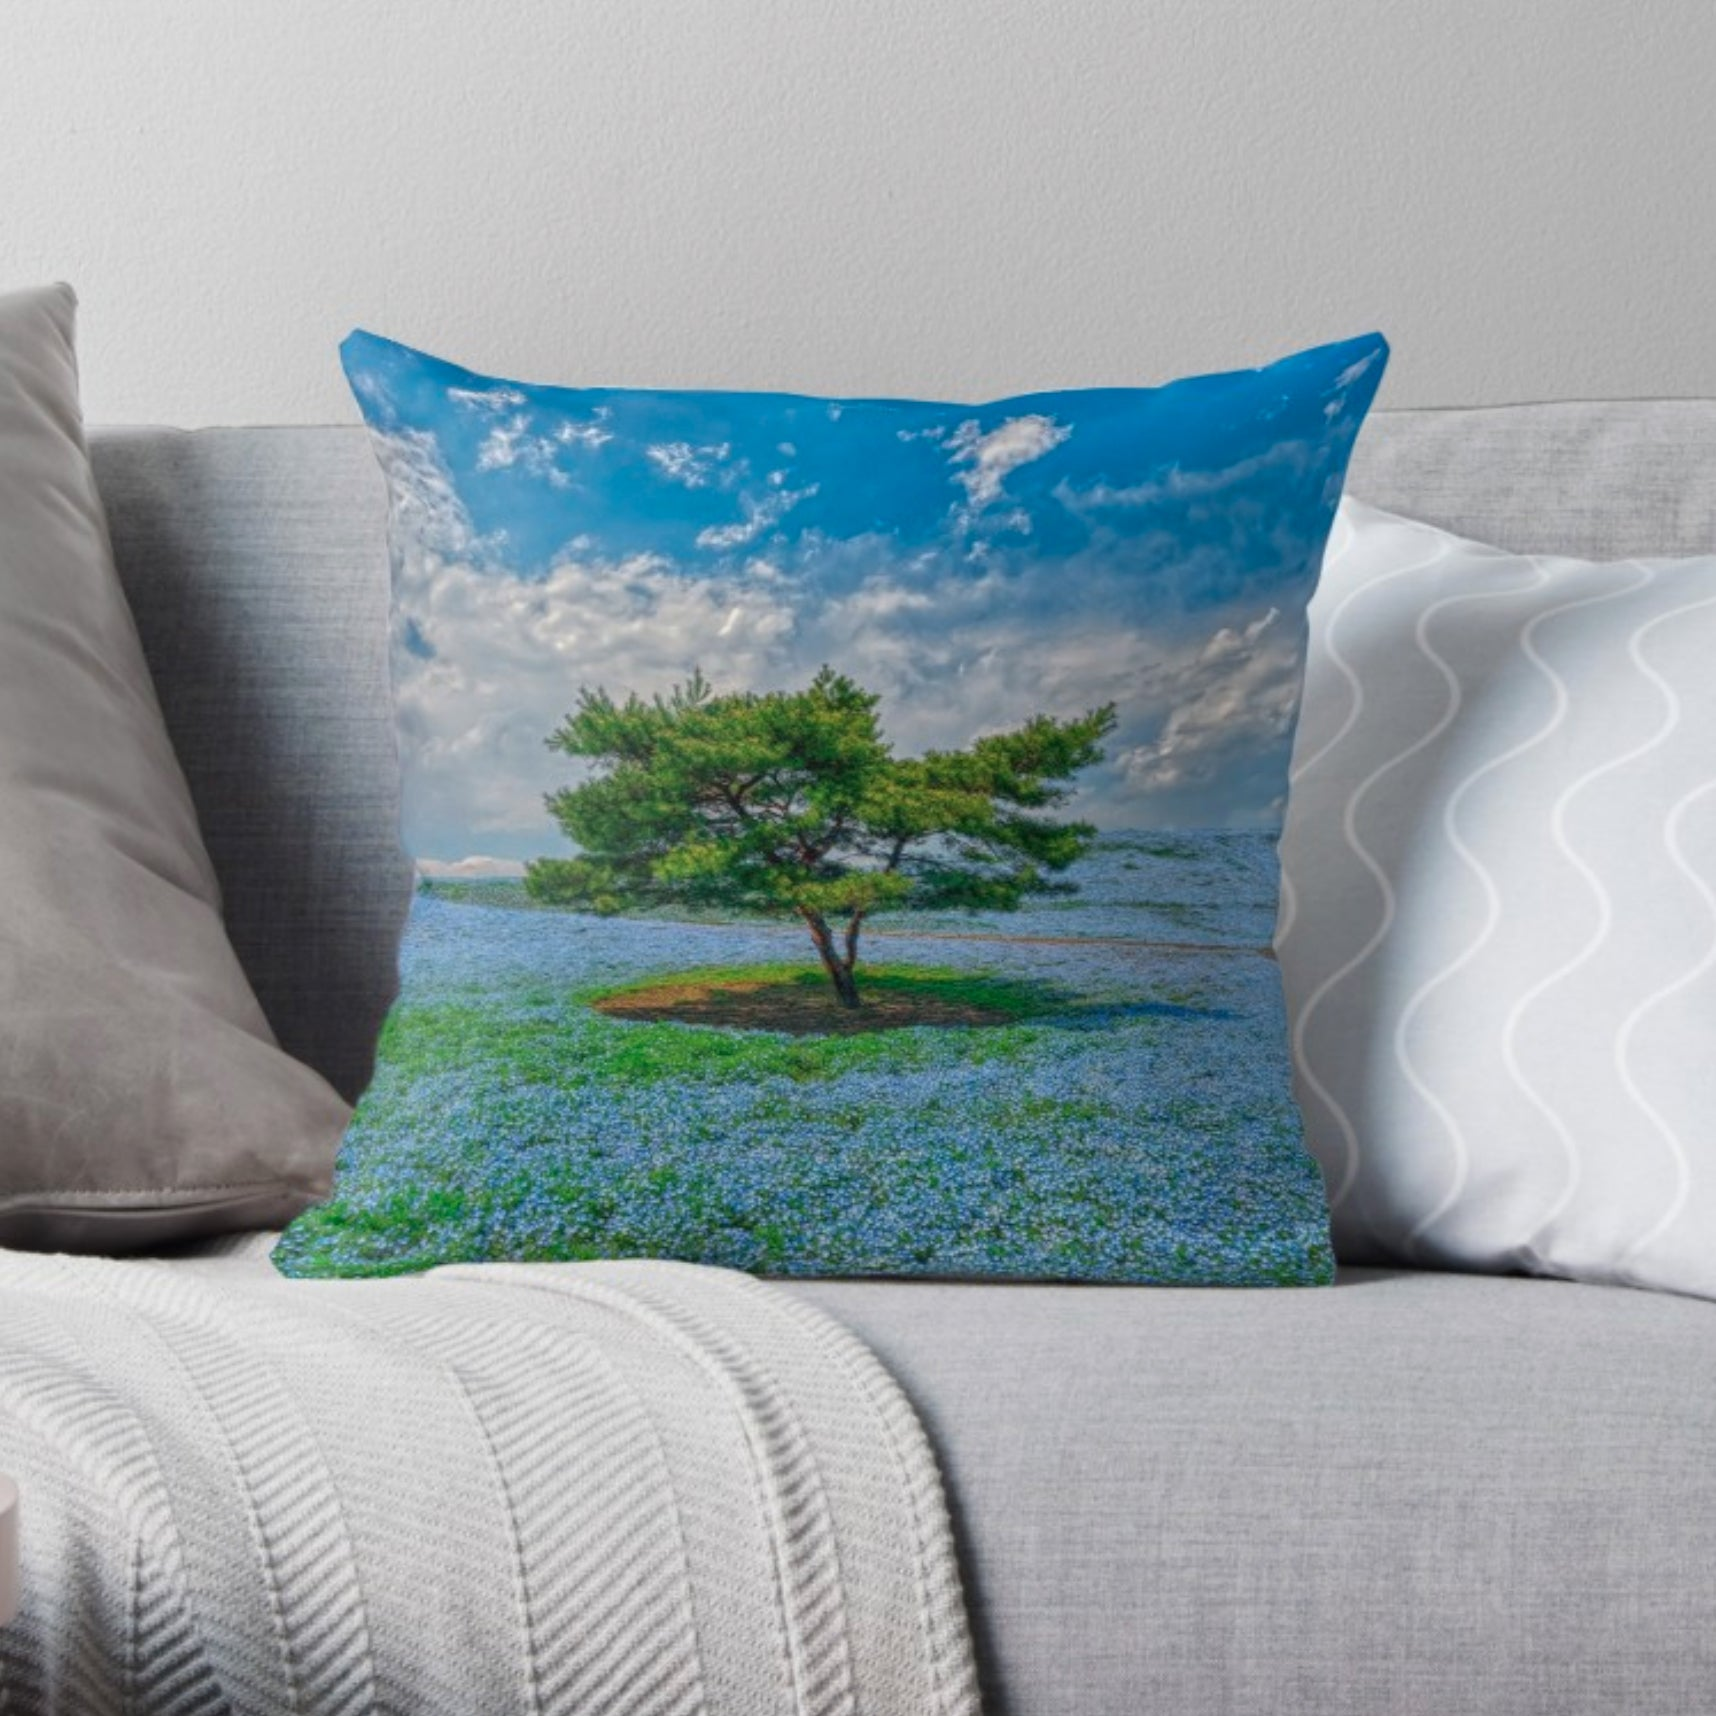 Luxury Decorative Pillow - The Beauty of Spring (Limited Edition)